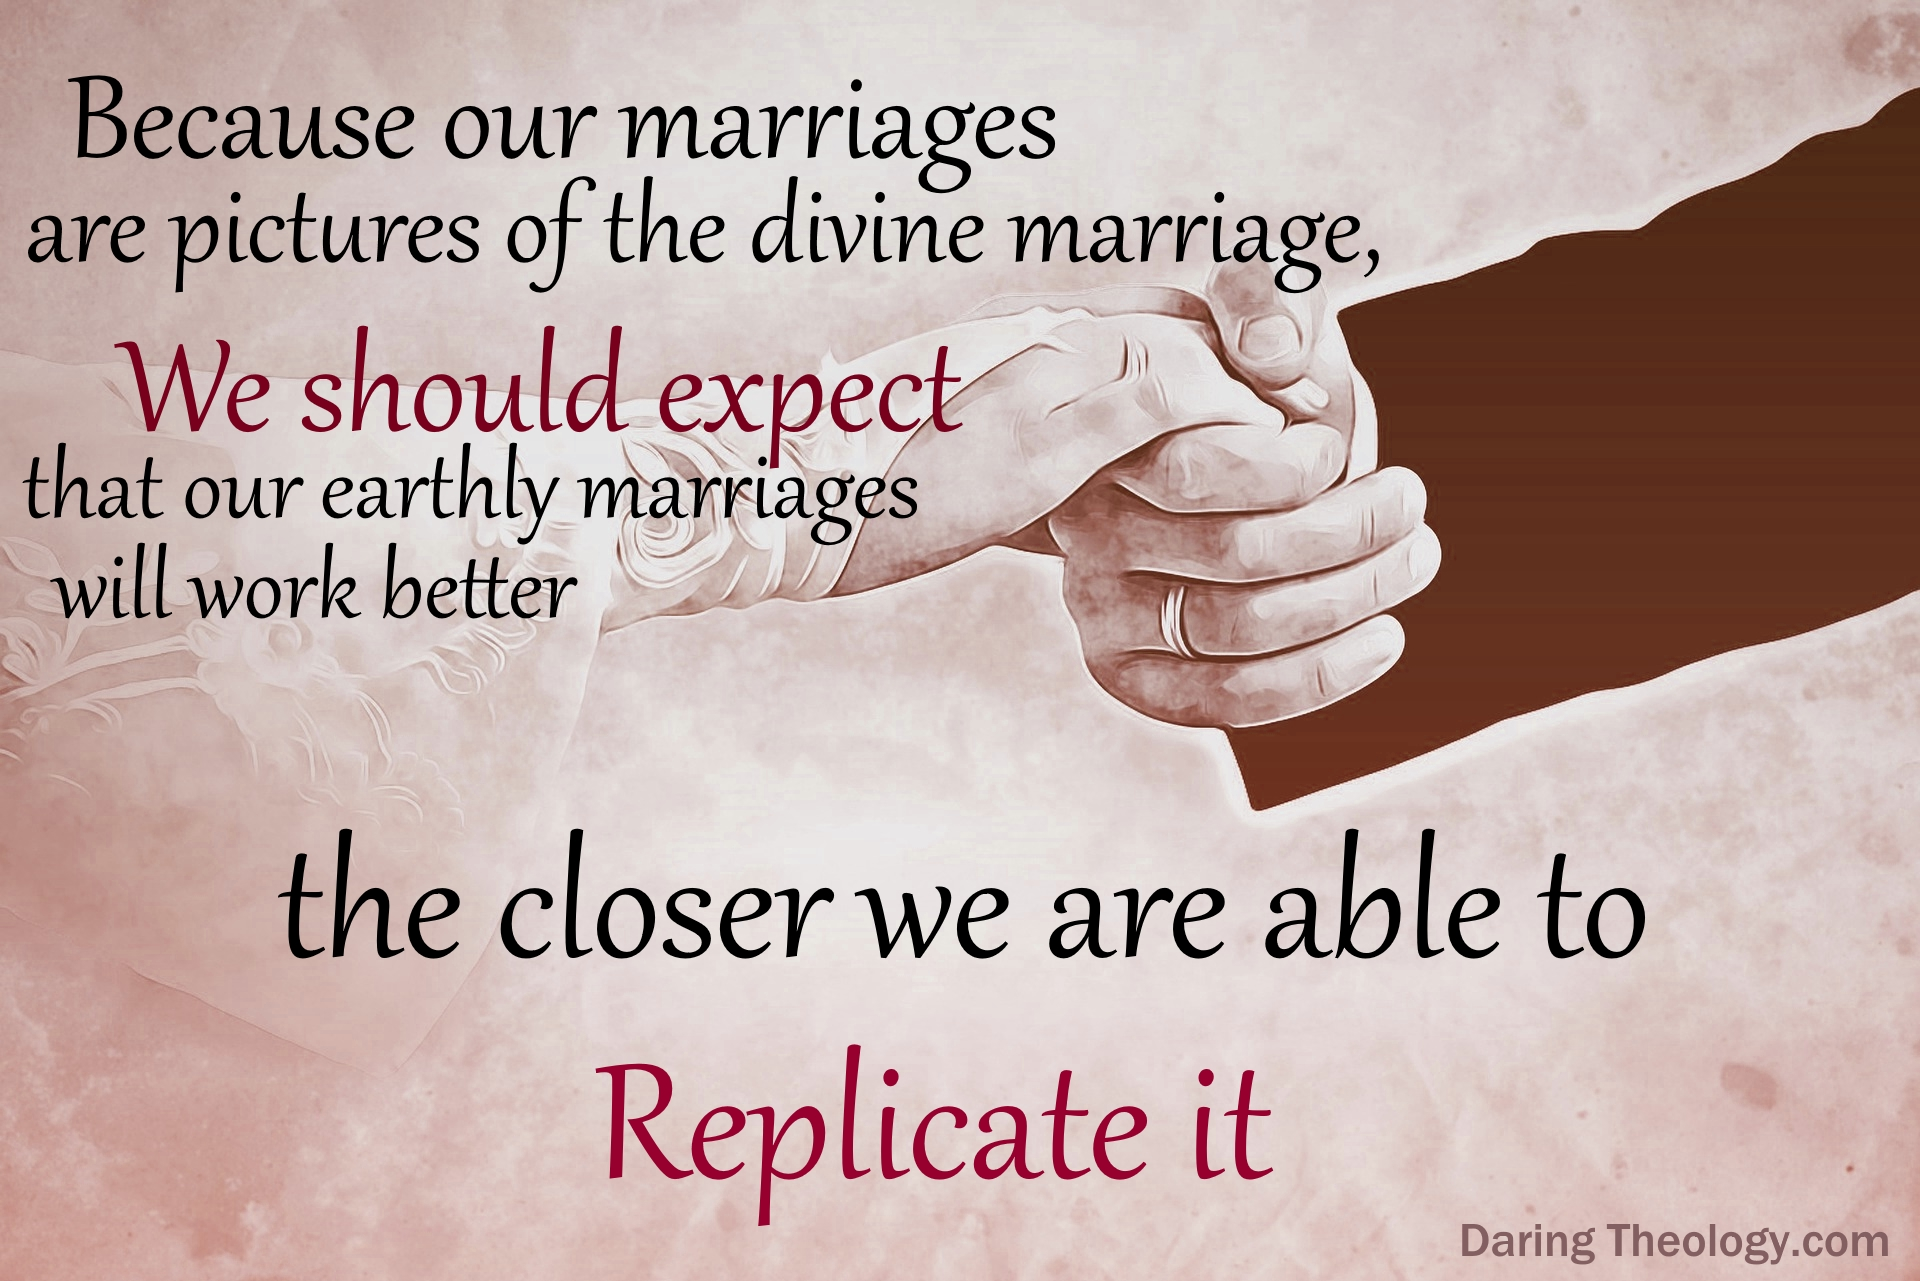 Our marriages are pictures of the divine marriage